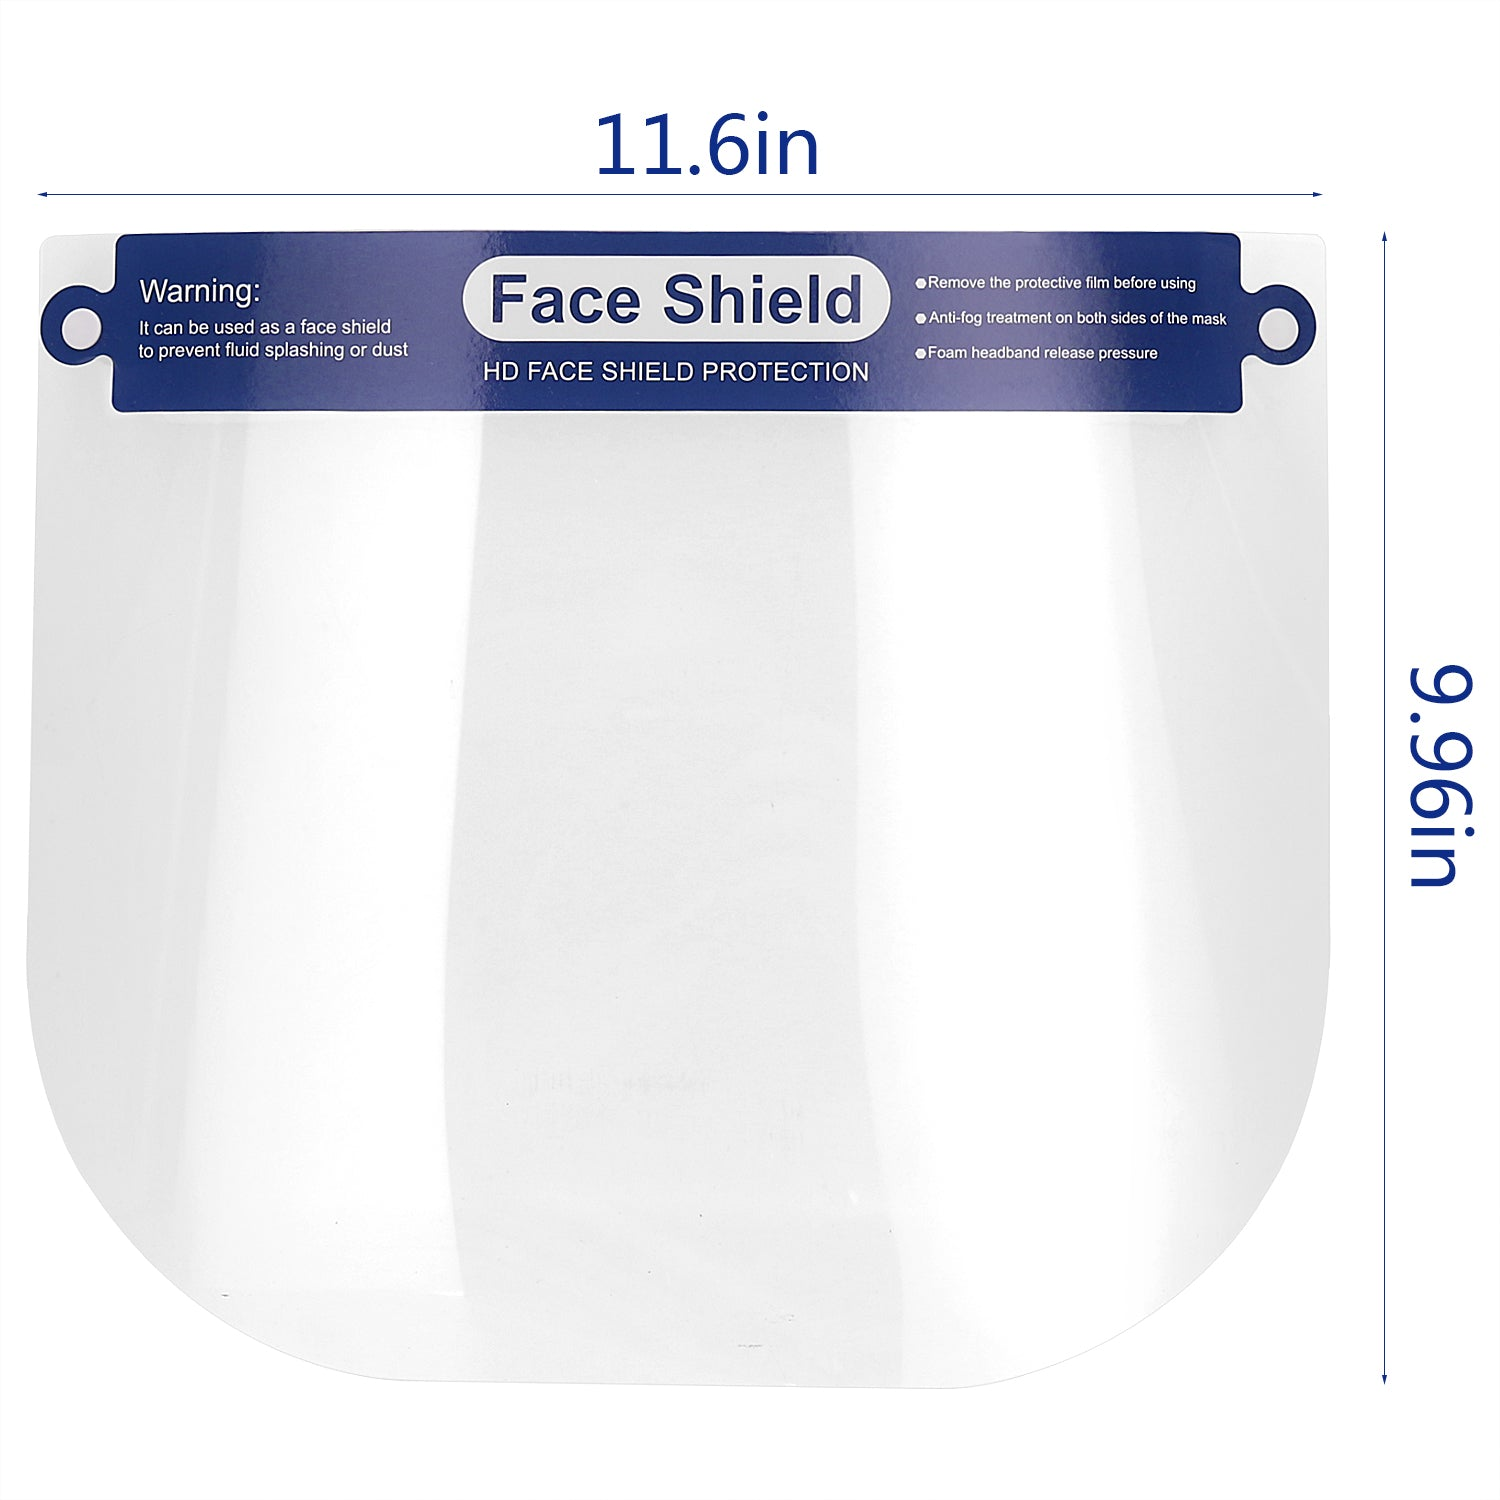 Safety Face Shield 2 PCS, All-Round Protection Cap Plastic Face Shield Safety Face Shield Full Face Shield for Men and Women Anti-Fog, Anti-saliva, Anti-Spitting Hat Cover Outdoor